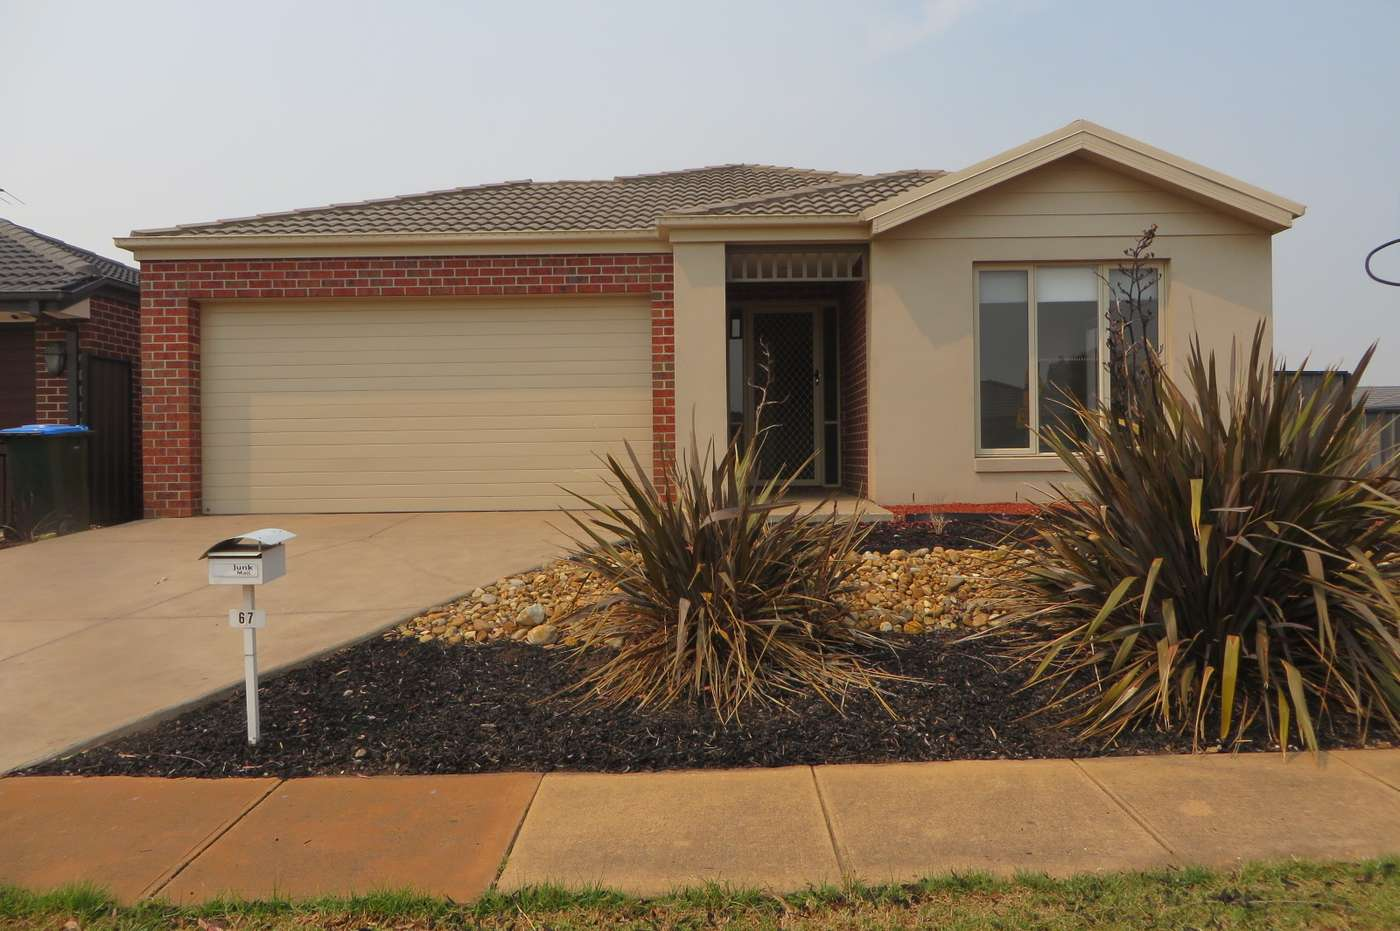 Main view of Homely house listing, 67 Breasley Parkway, Point Cook, VIC 3030